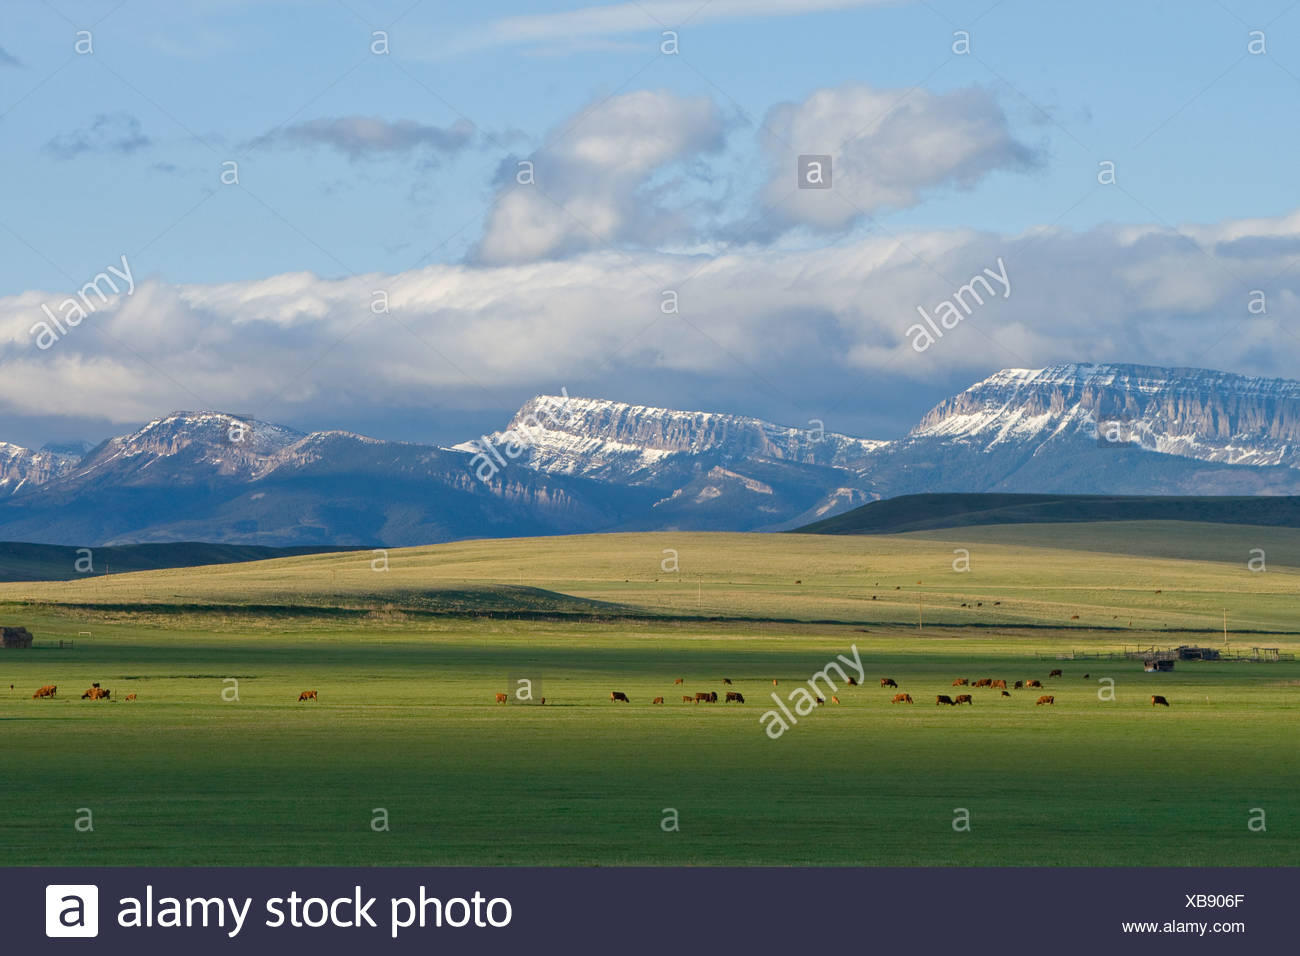 Beef cattle graze on healthy lush spring grass with the Sawtooth Ridge in the background / near Augusta, Montana, USA. - Stock Image